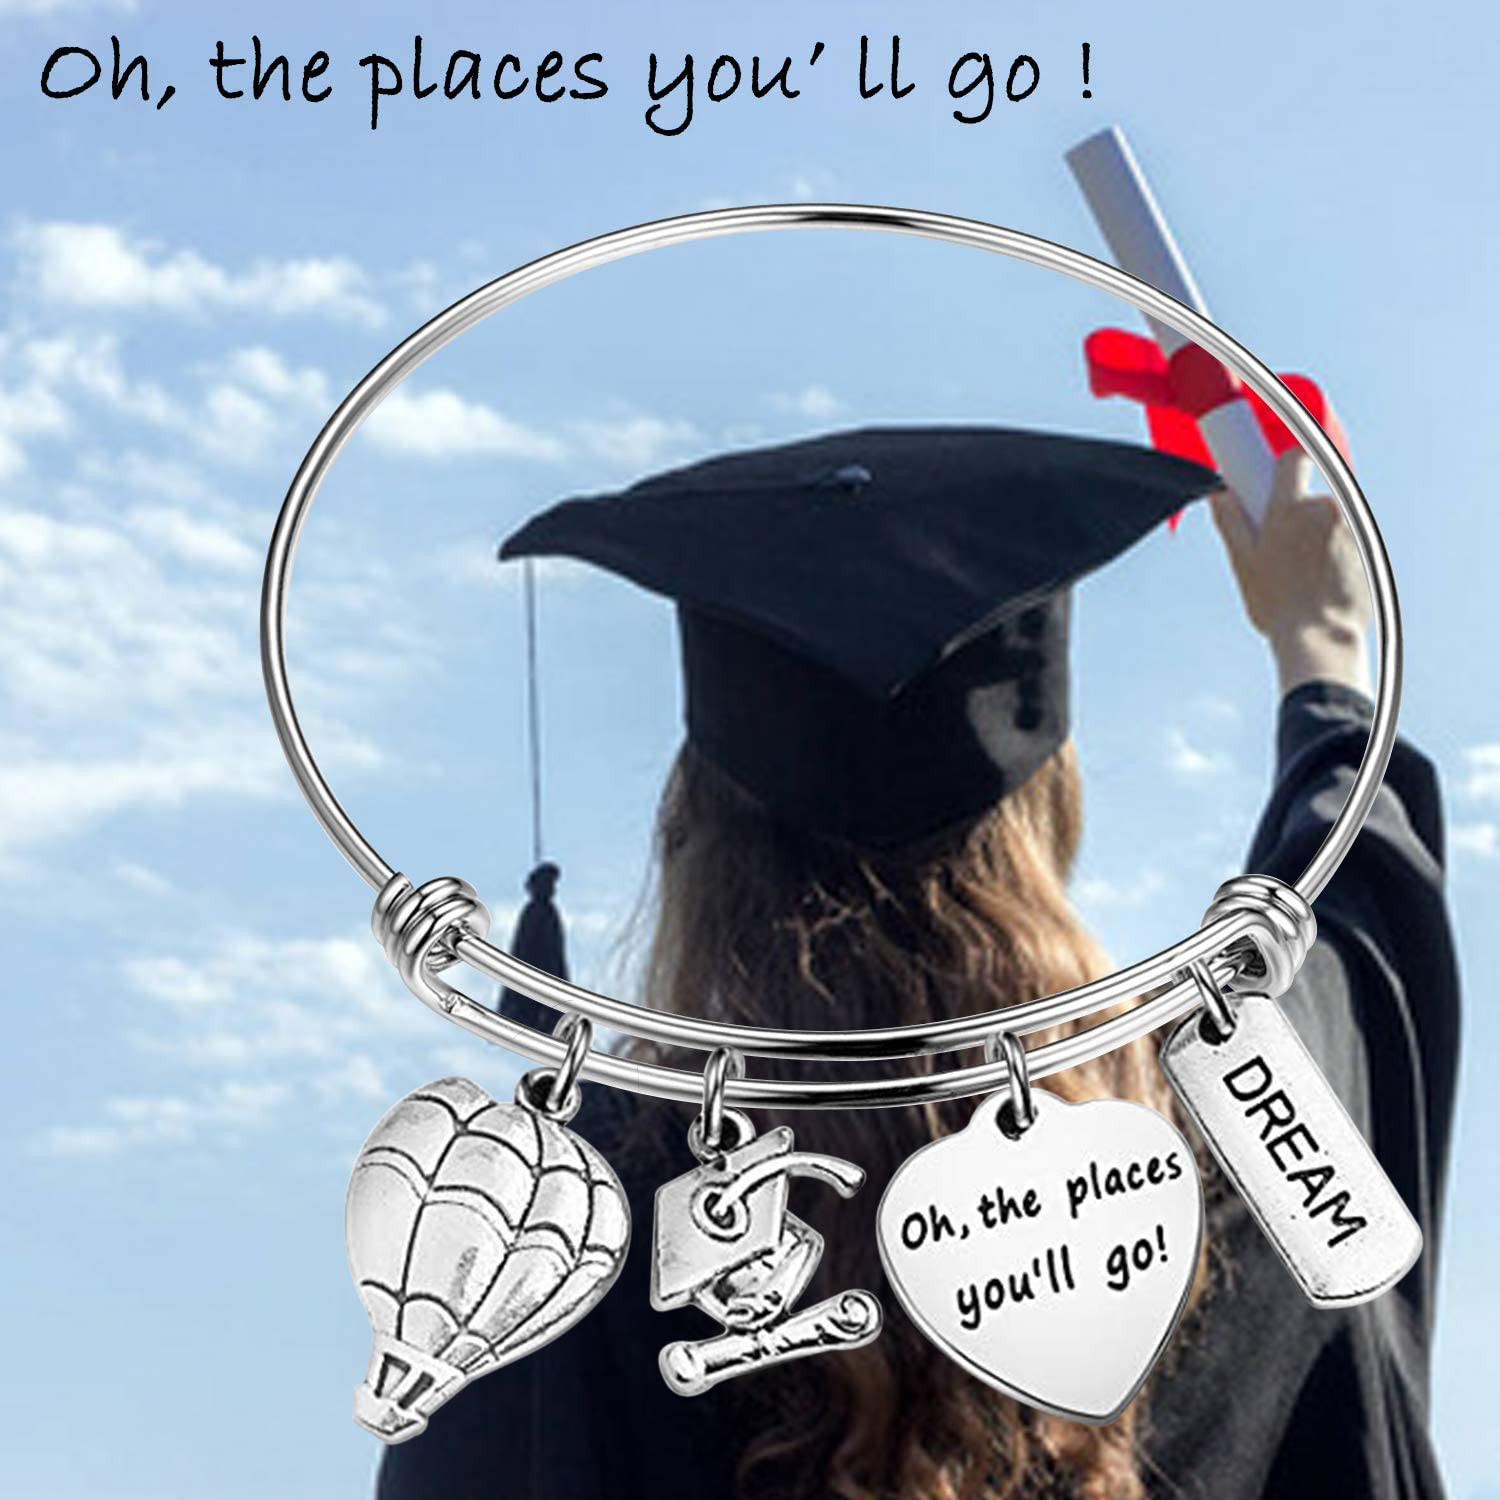 Wanderlust Explore World Oh The Places You/'ll Go Class of 2019 Graduation Cap Dainty Stainless Steel Stacking Band Ring